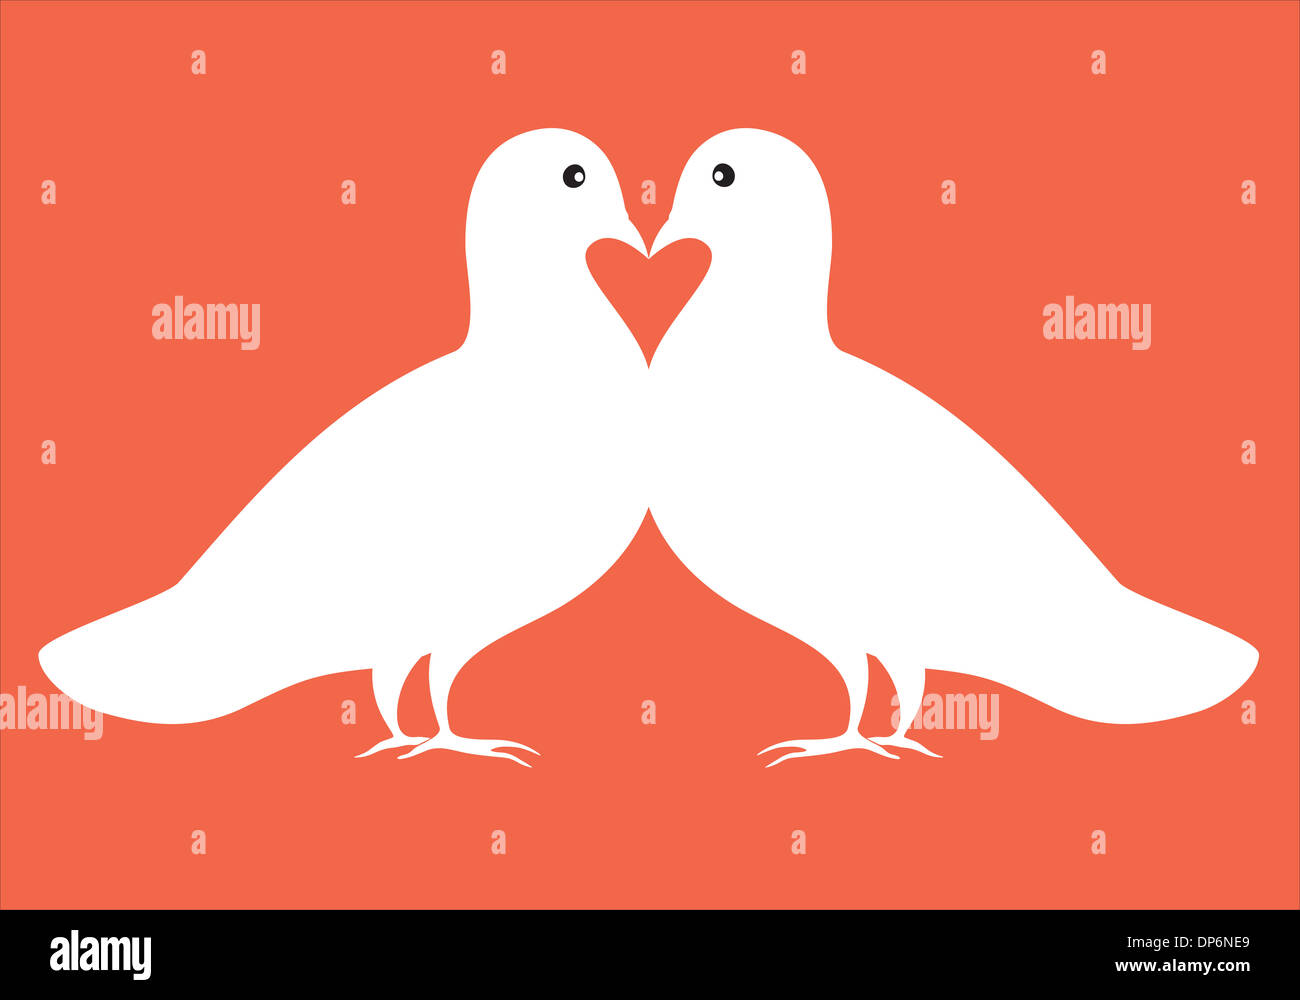 Illustration Of White Doves Pair In Love With Red Heart Symbol Stock